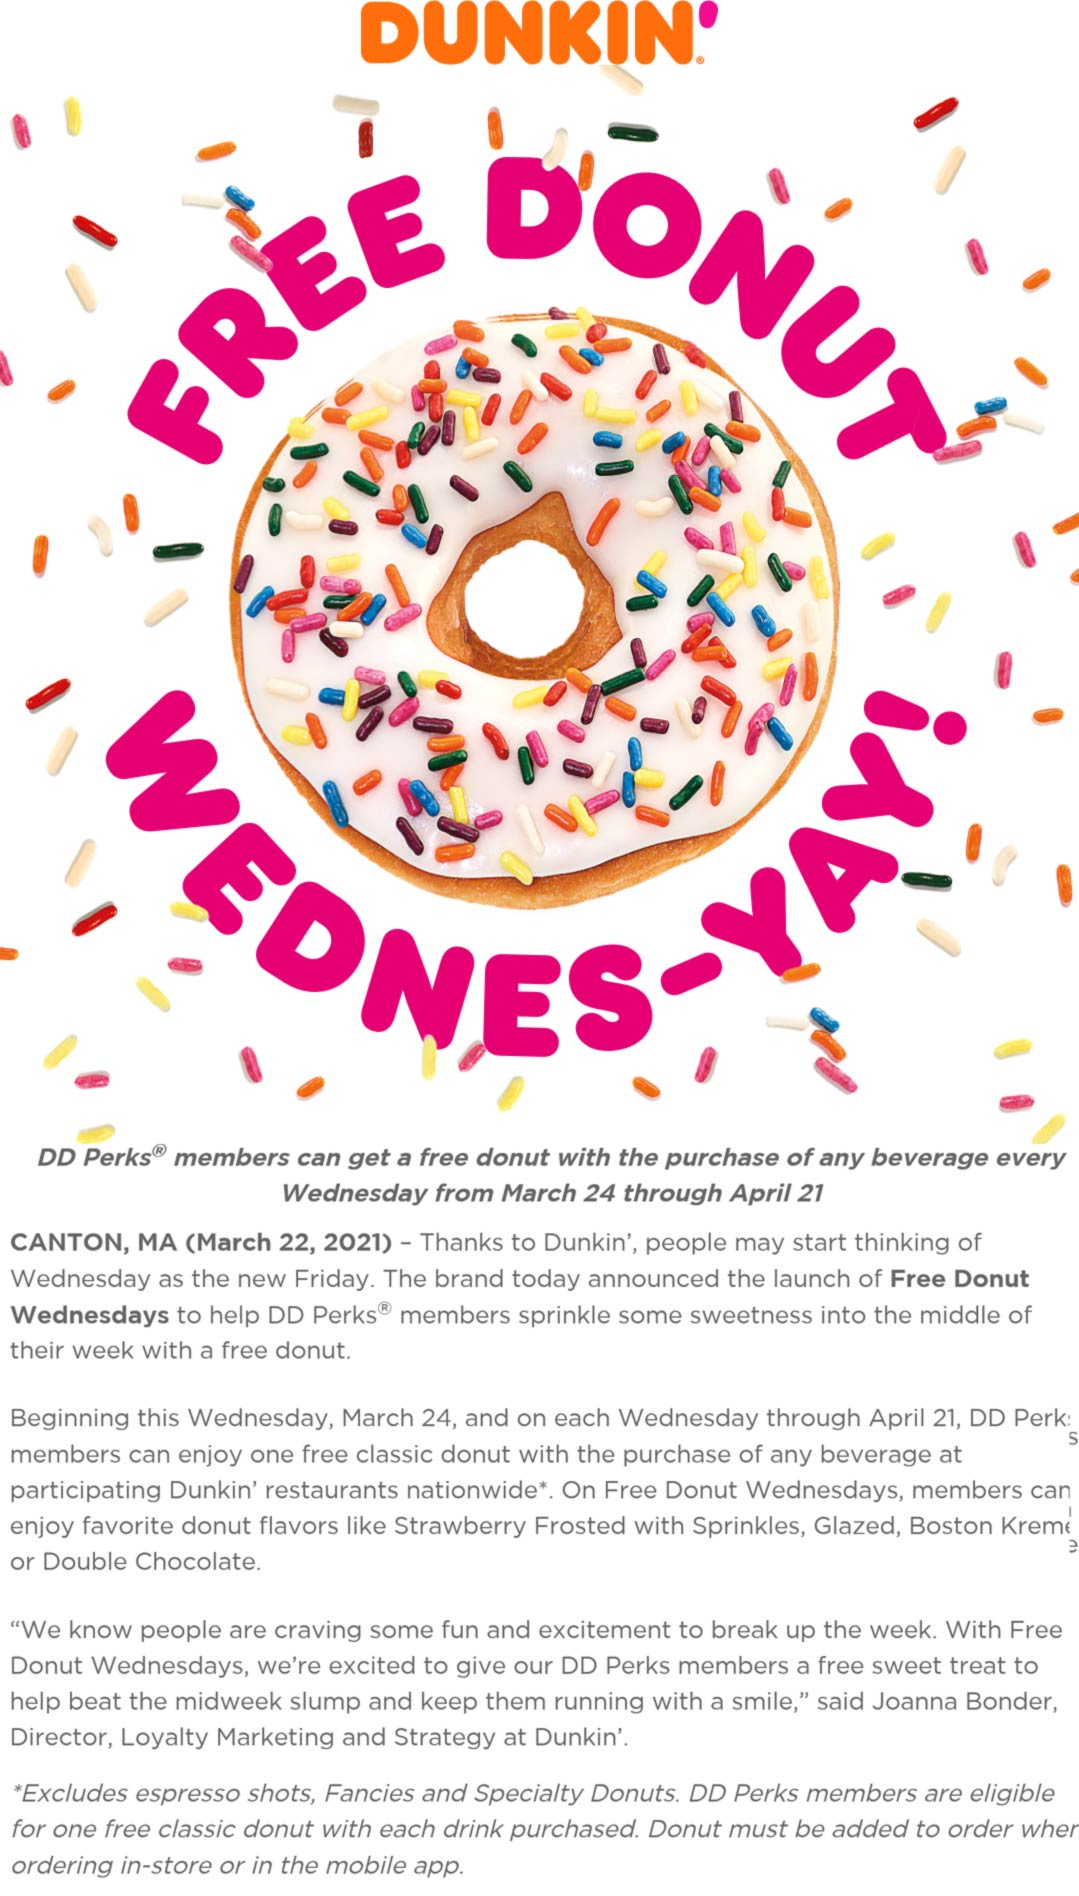 Dunkin Donuts restaurants Coupon  Free doughnut with your beverage Wednesdays for rewards members at Dunkin Donuts #dunkindonuts